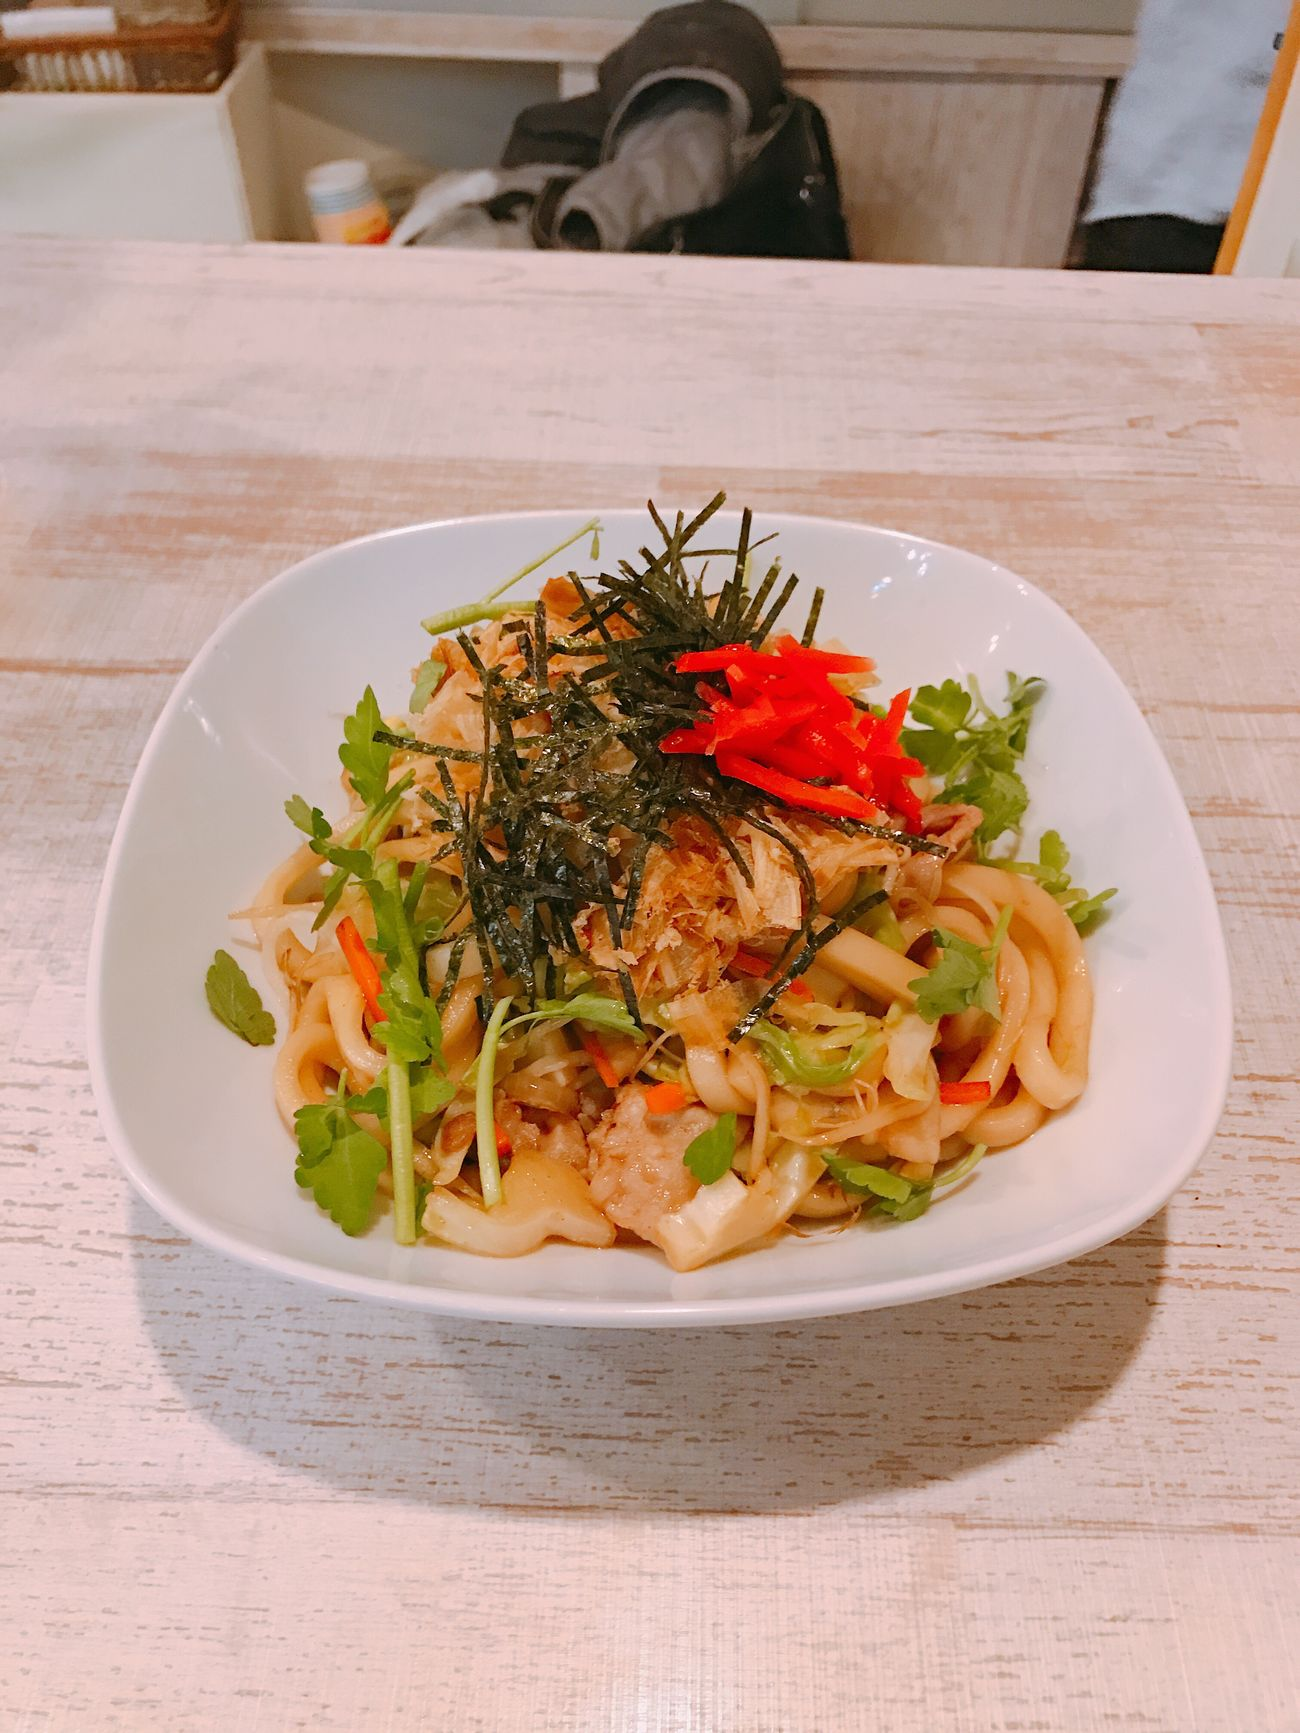 today's dinner. YAKIUDON. Freshness Ready-to-eat Food And Drink Food Plate Healthy Eating Serving Size Table Indoors  Close-up No People Day